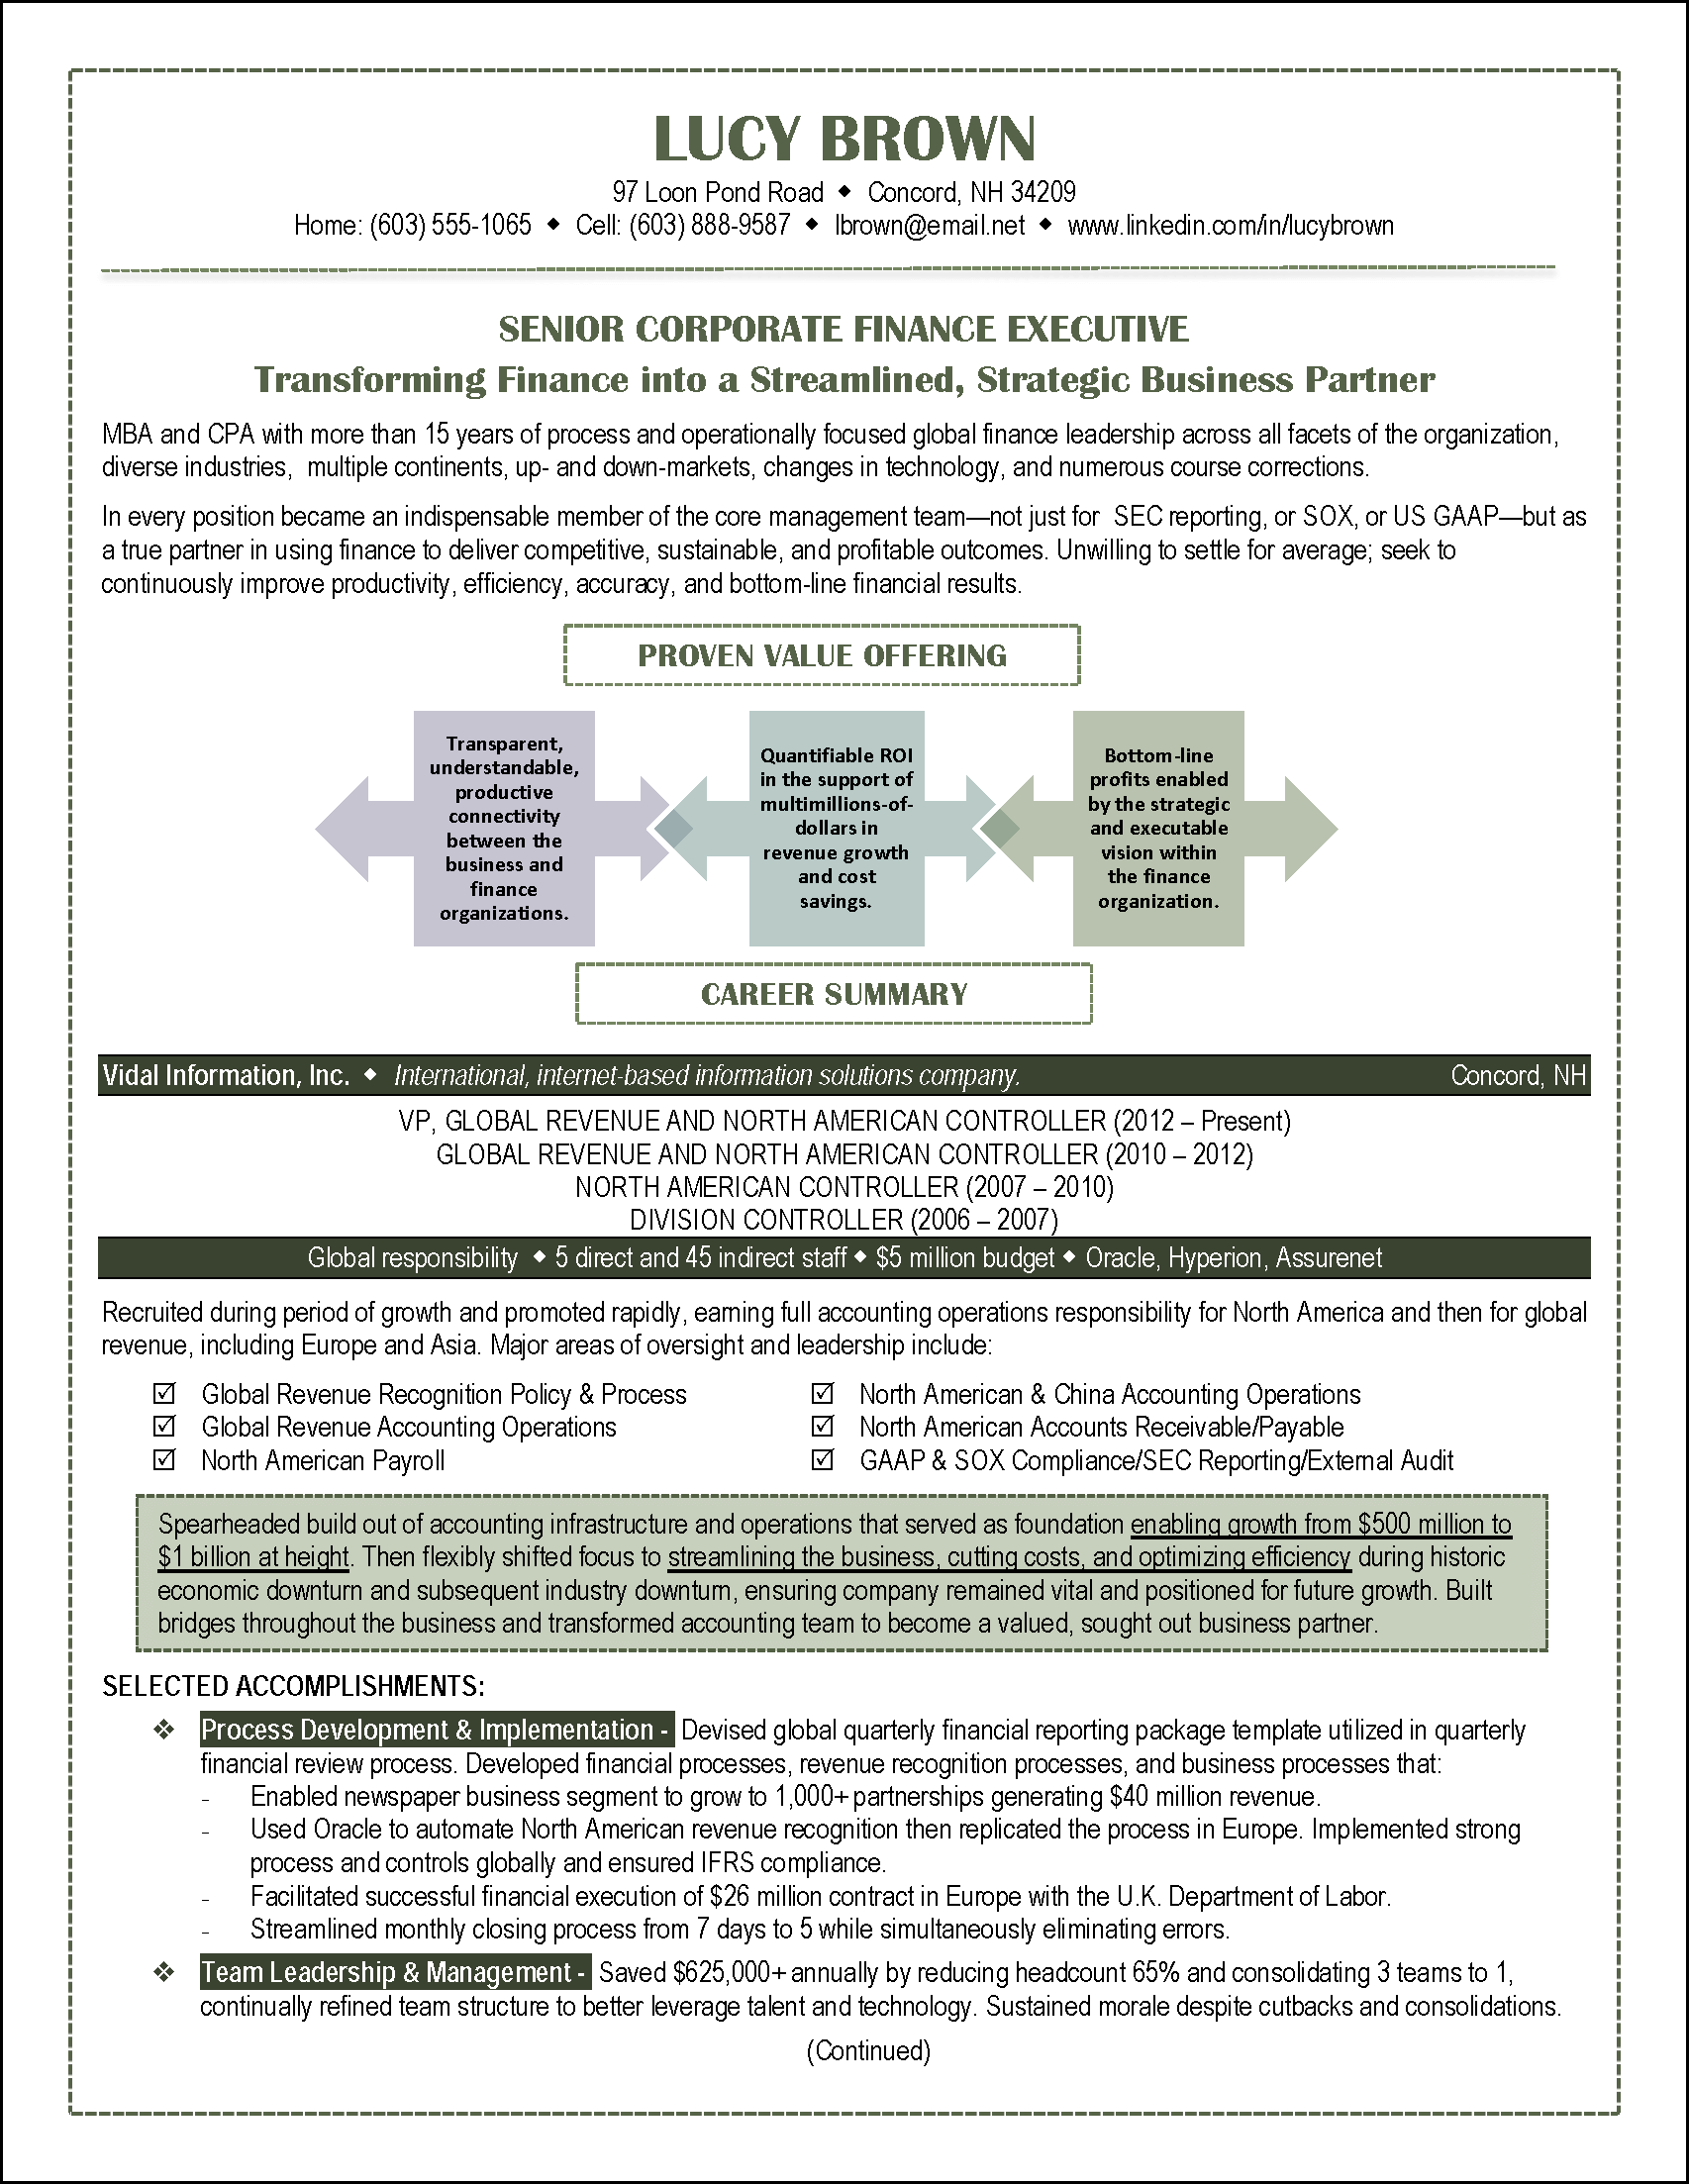 resume for financial services industry breakupus unusual civilengineerresumeexampleexecutivepng binuatan get a job in the financial services industry by writing a